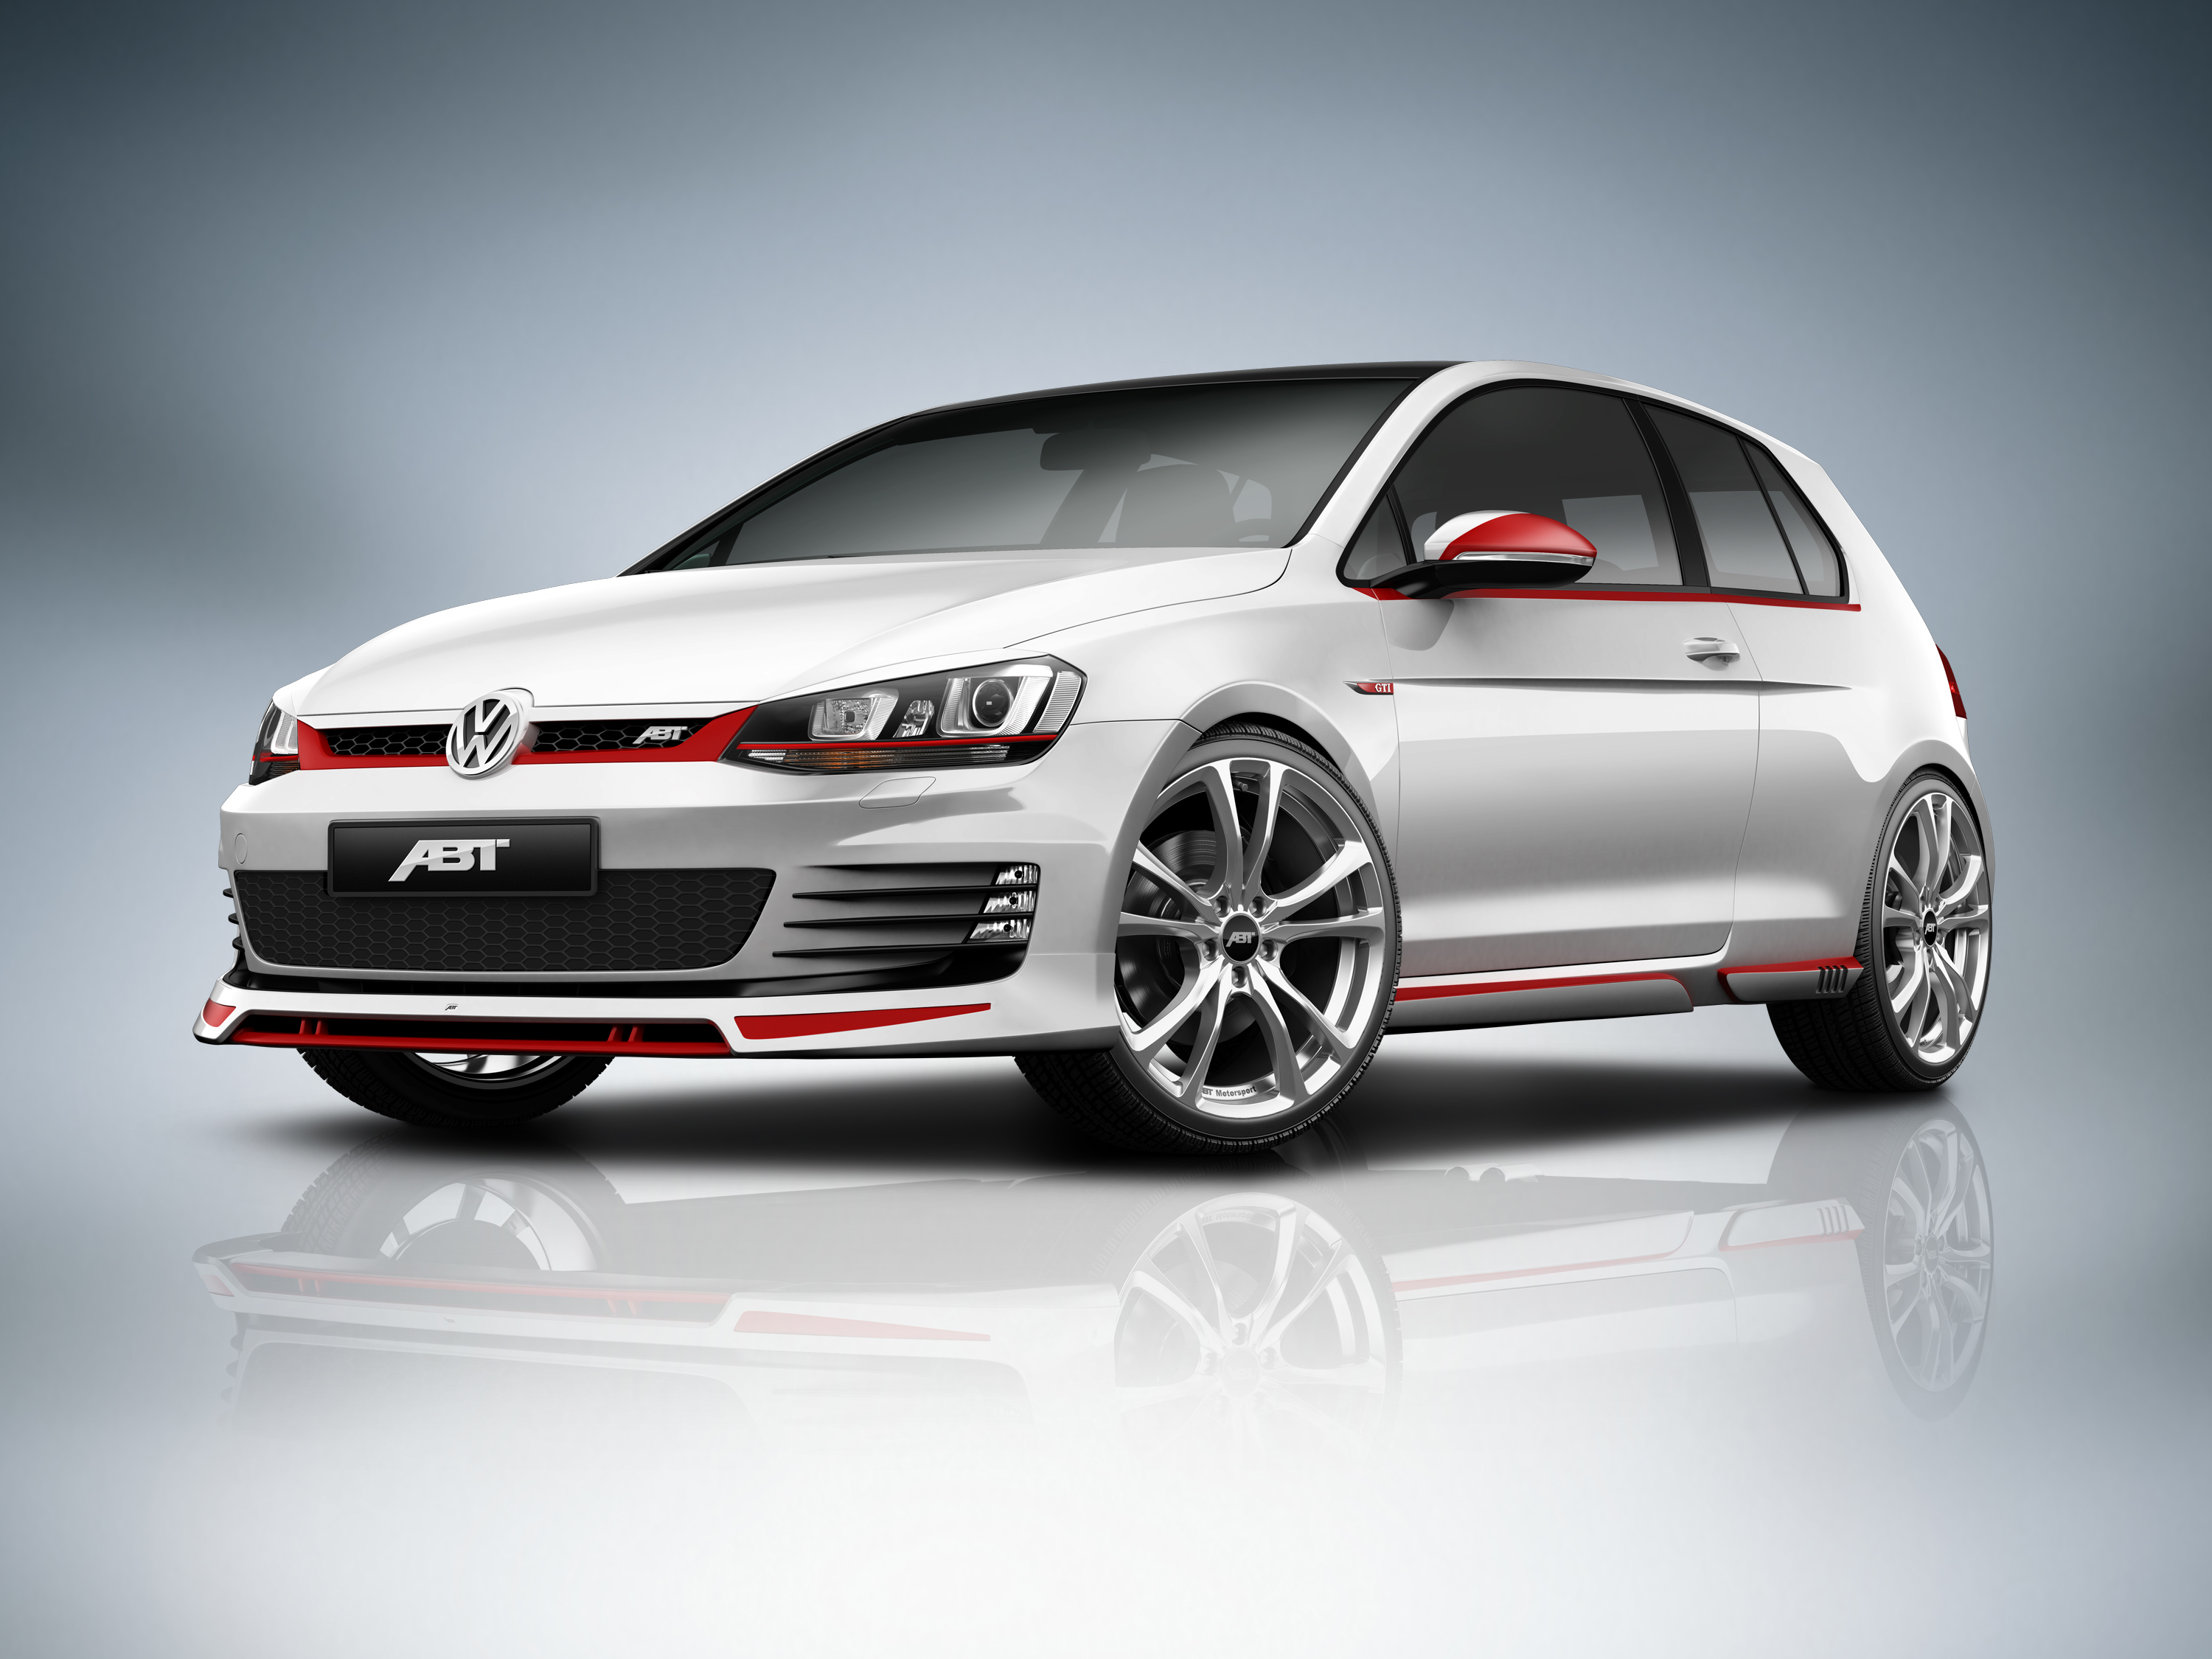 abt golf vii gti. Black Bedroom Furniture Sets. Home Design Ideas